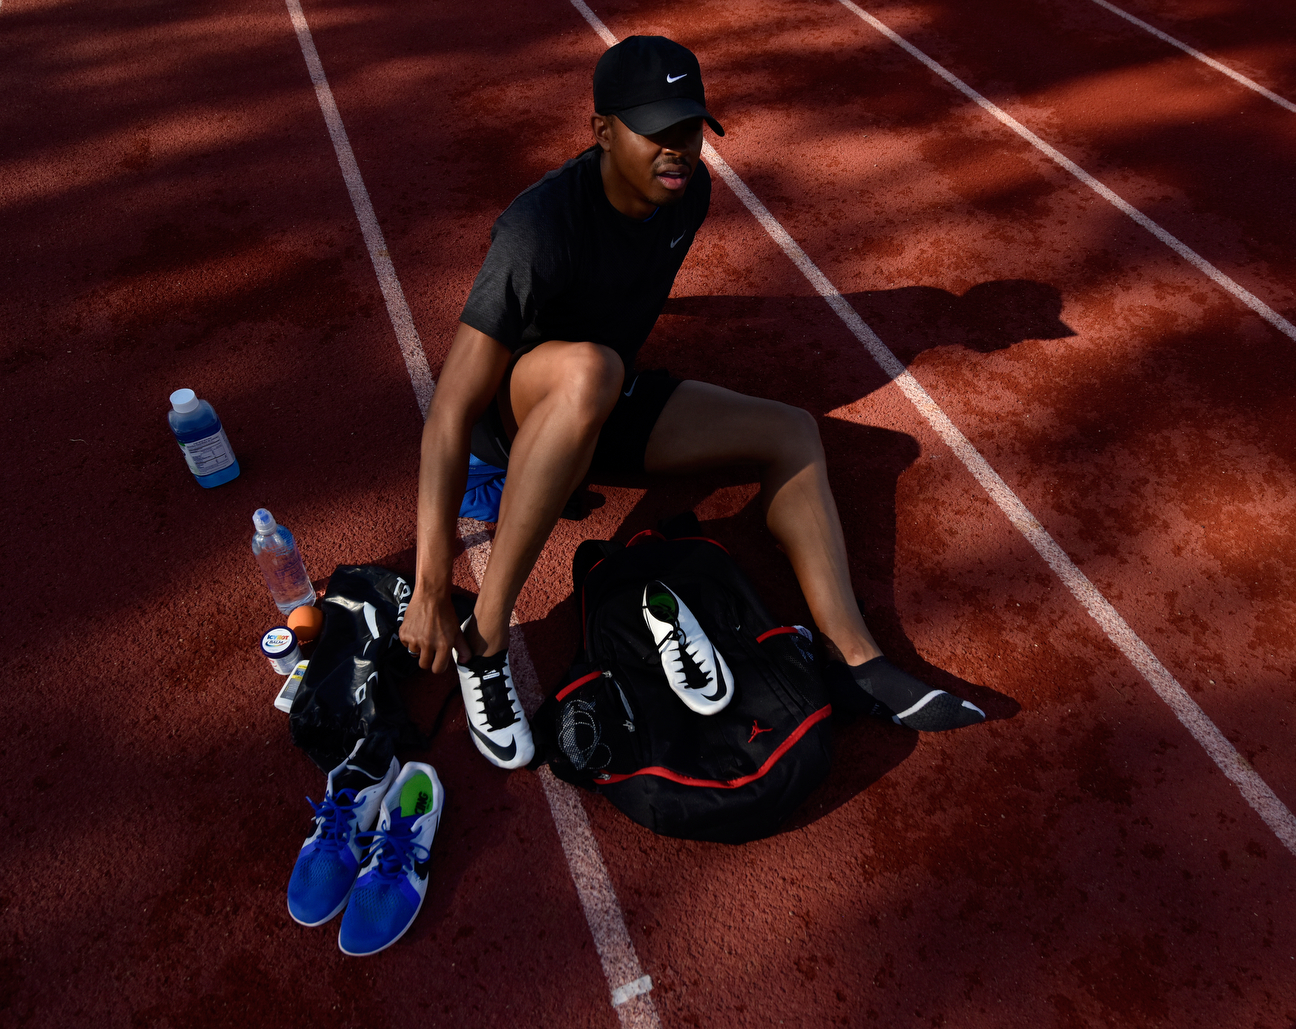 Putting on his shoes for a training session, Merritt felt much better than he did when he donned them for the 2015 world championships in Beijing. At that point, his kidney was functioning at just 10-15 percent, and he was scheduled for his transplant just days later. He still finished third.